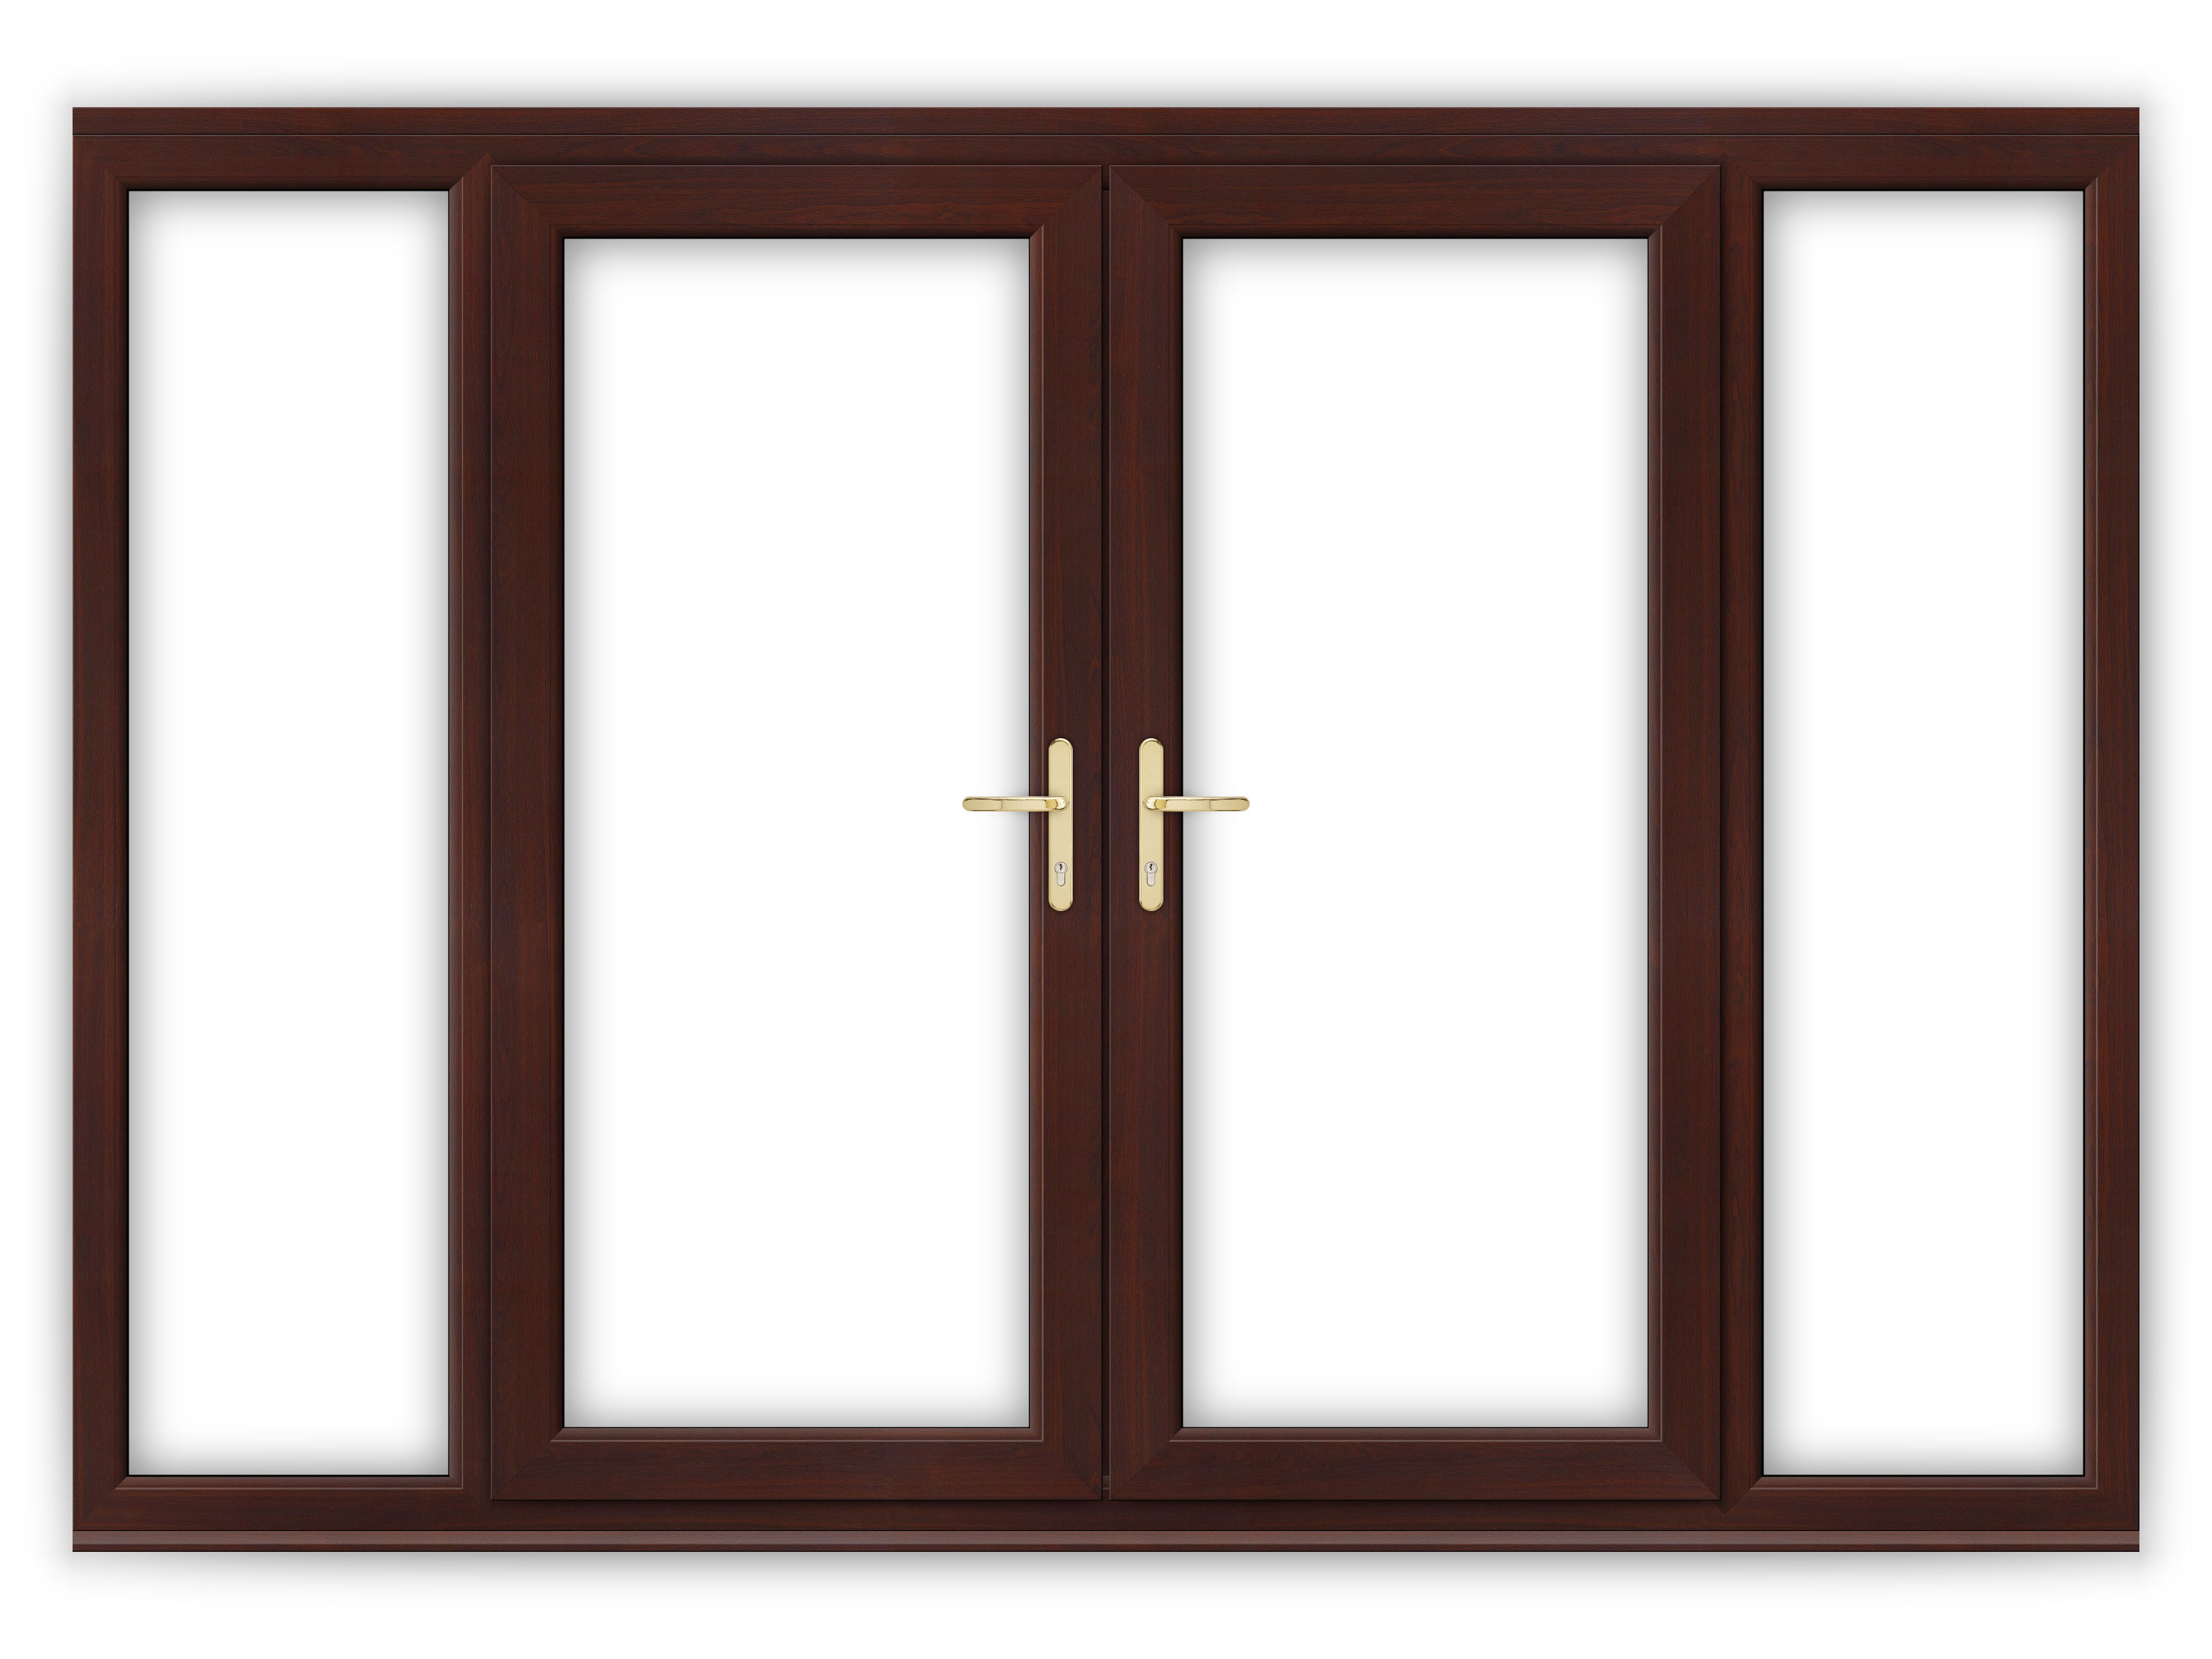 6ft rosewood upvc french doors with wide side panels